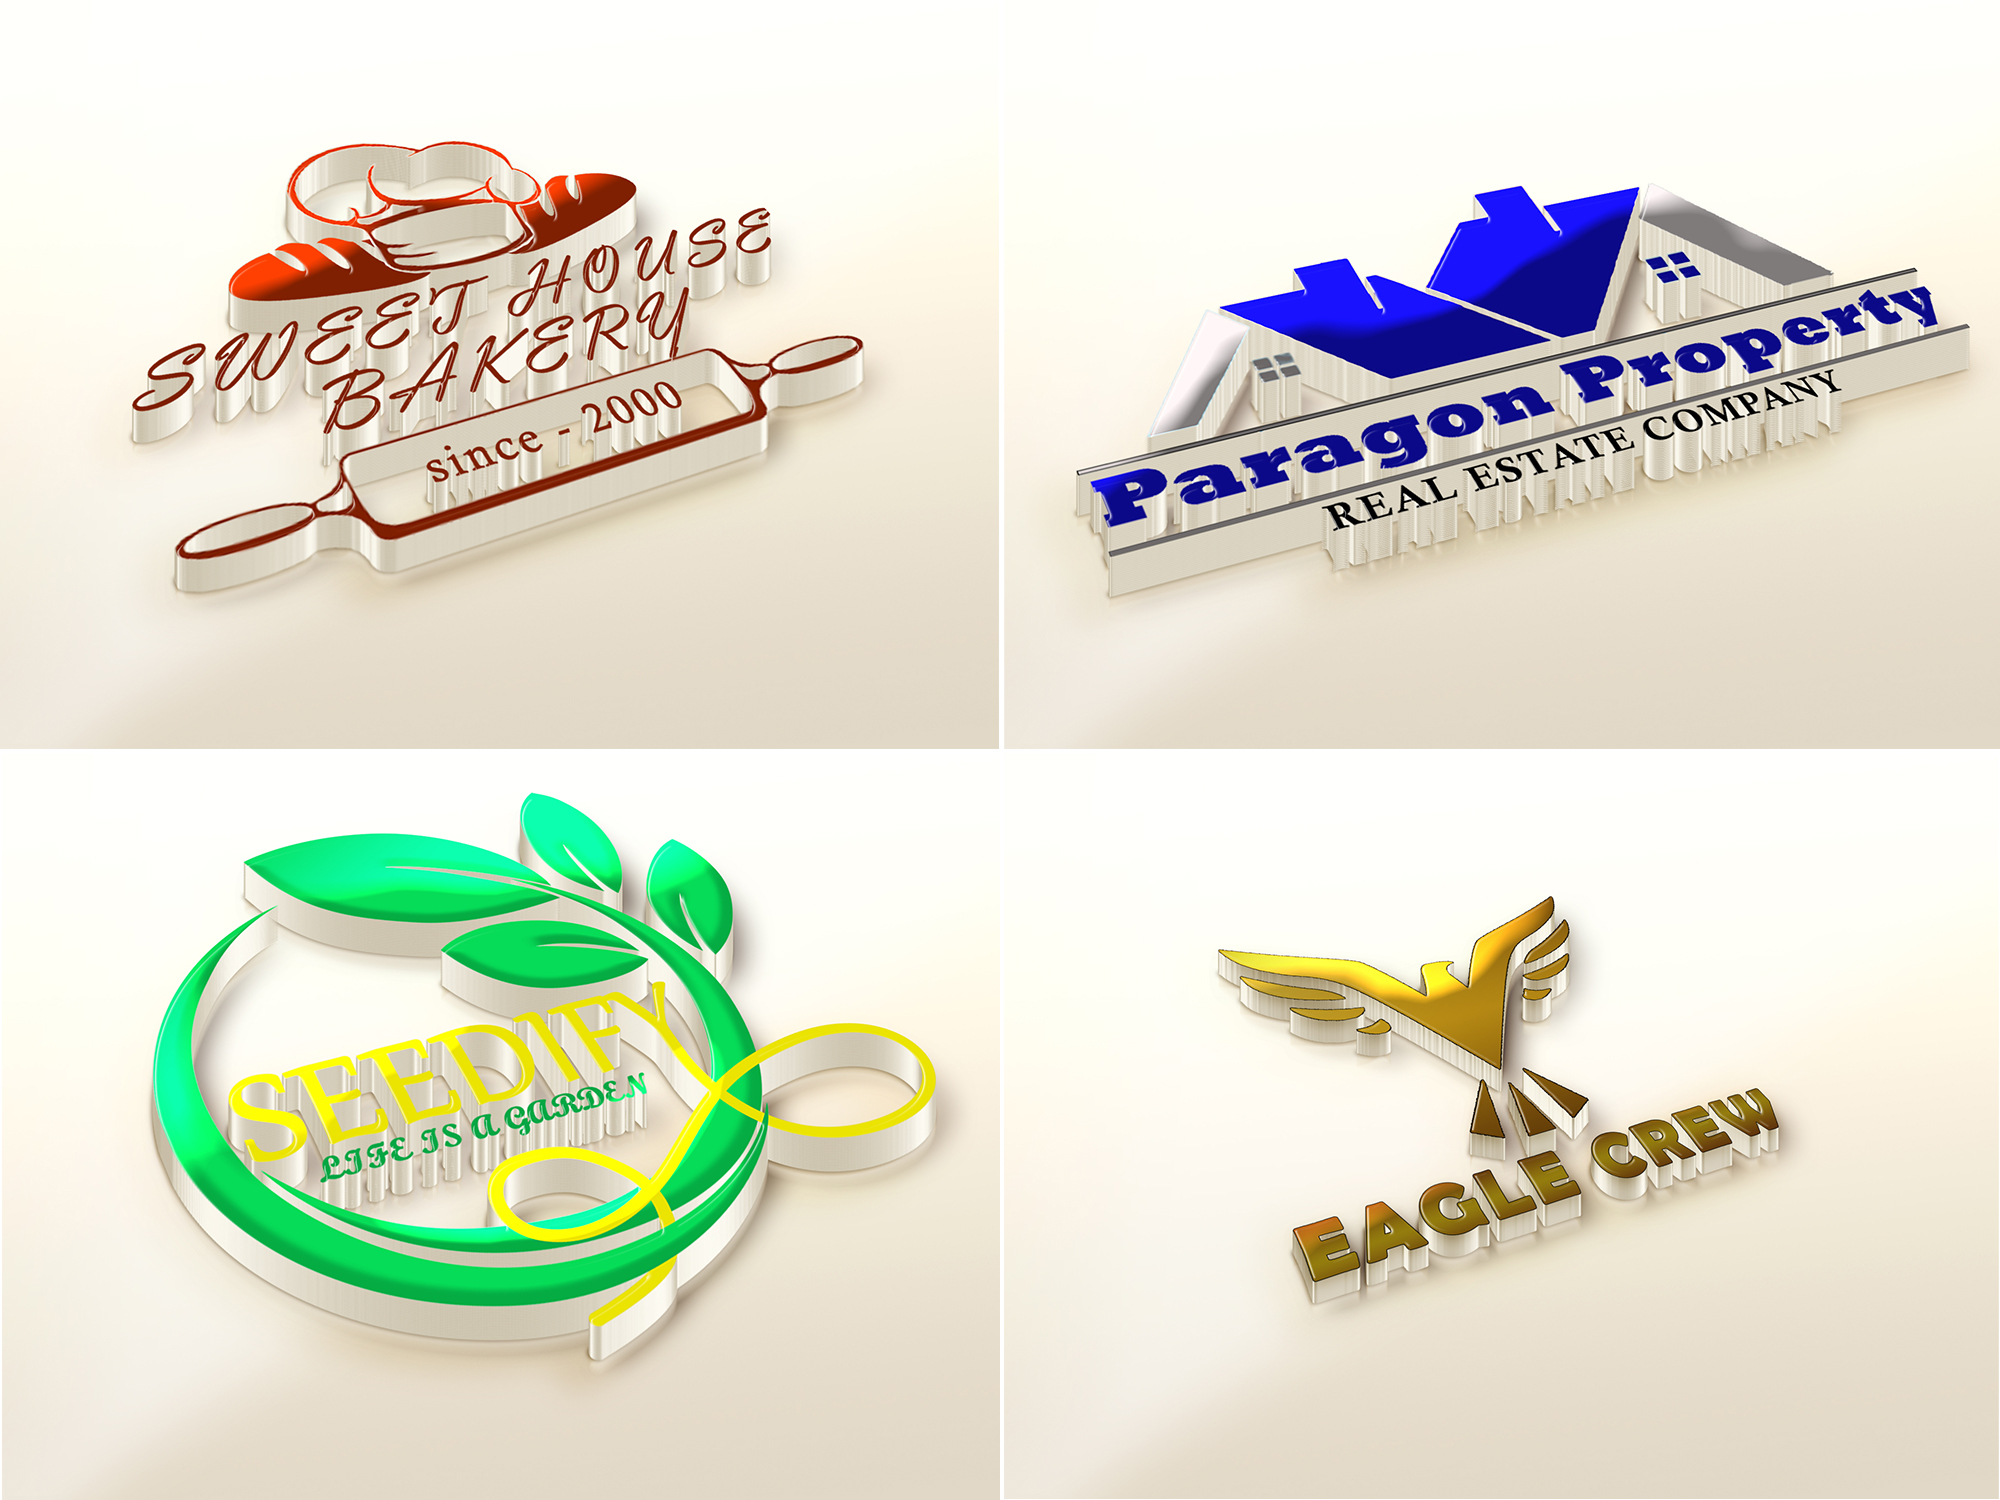 I will design modern creative versatile logo design